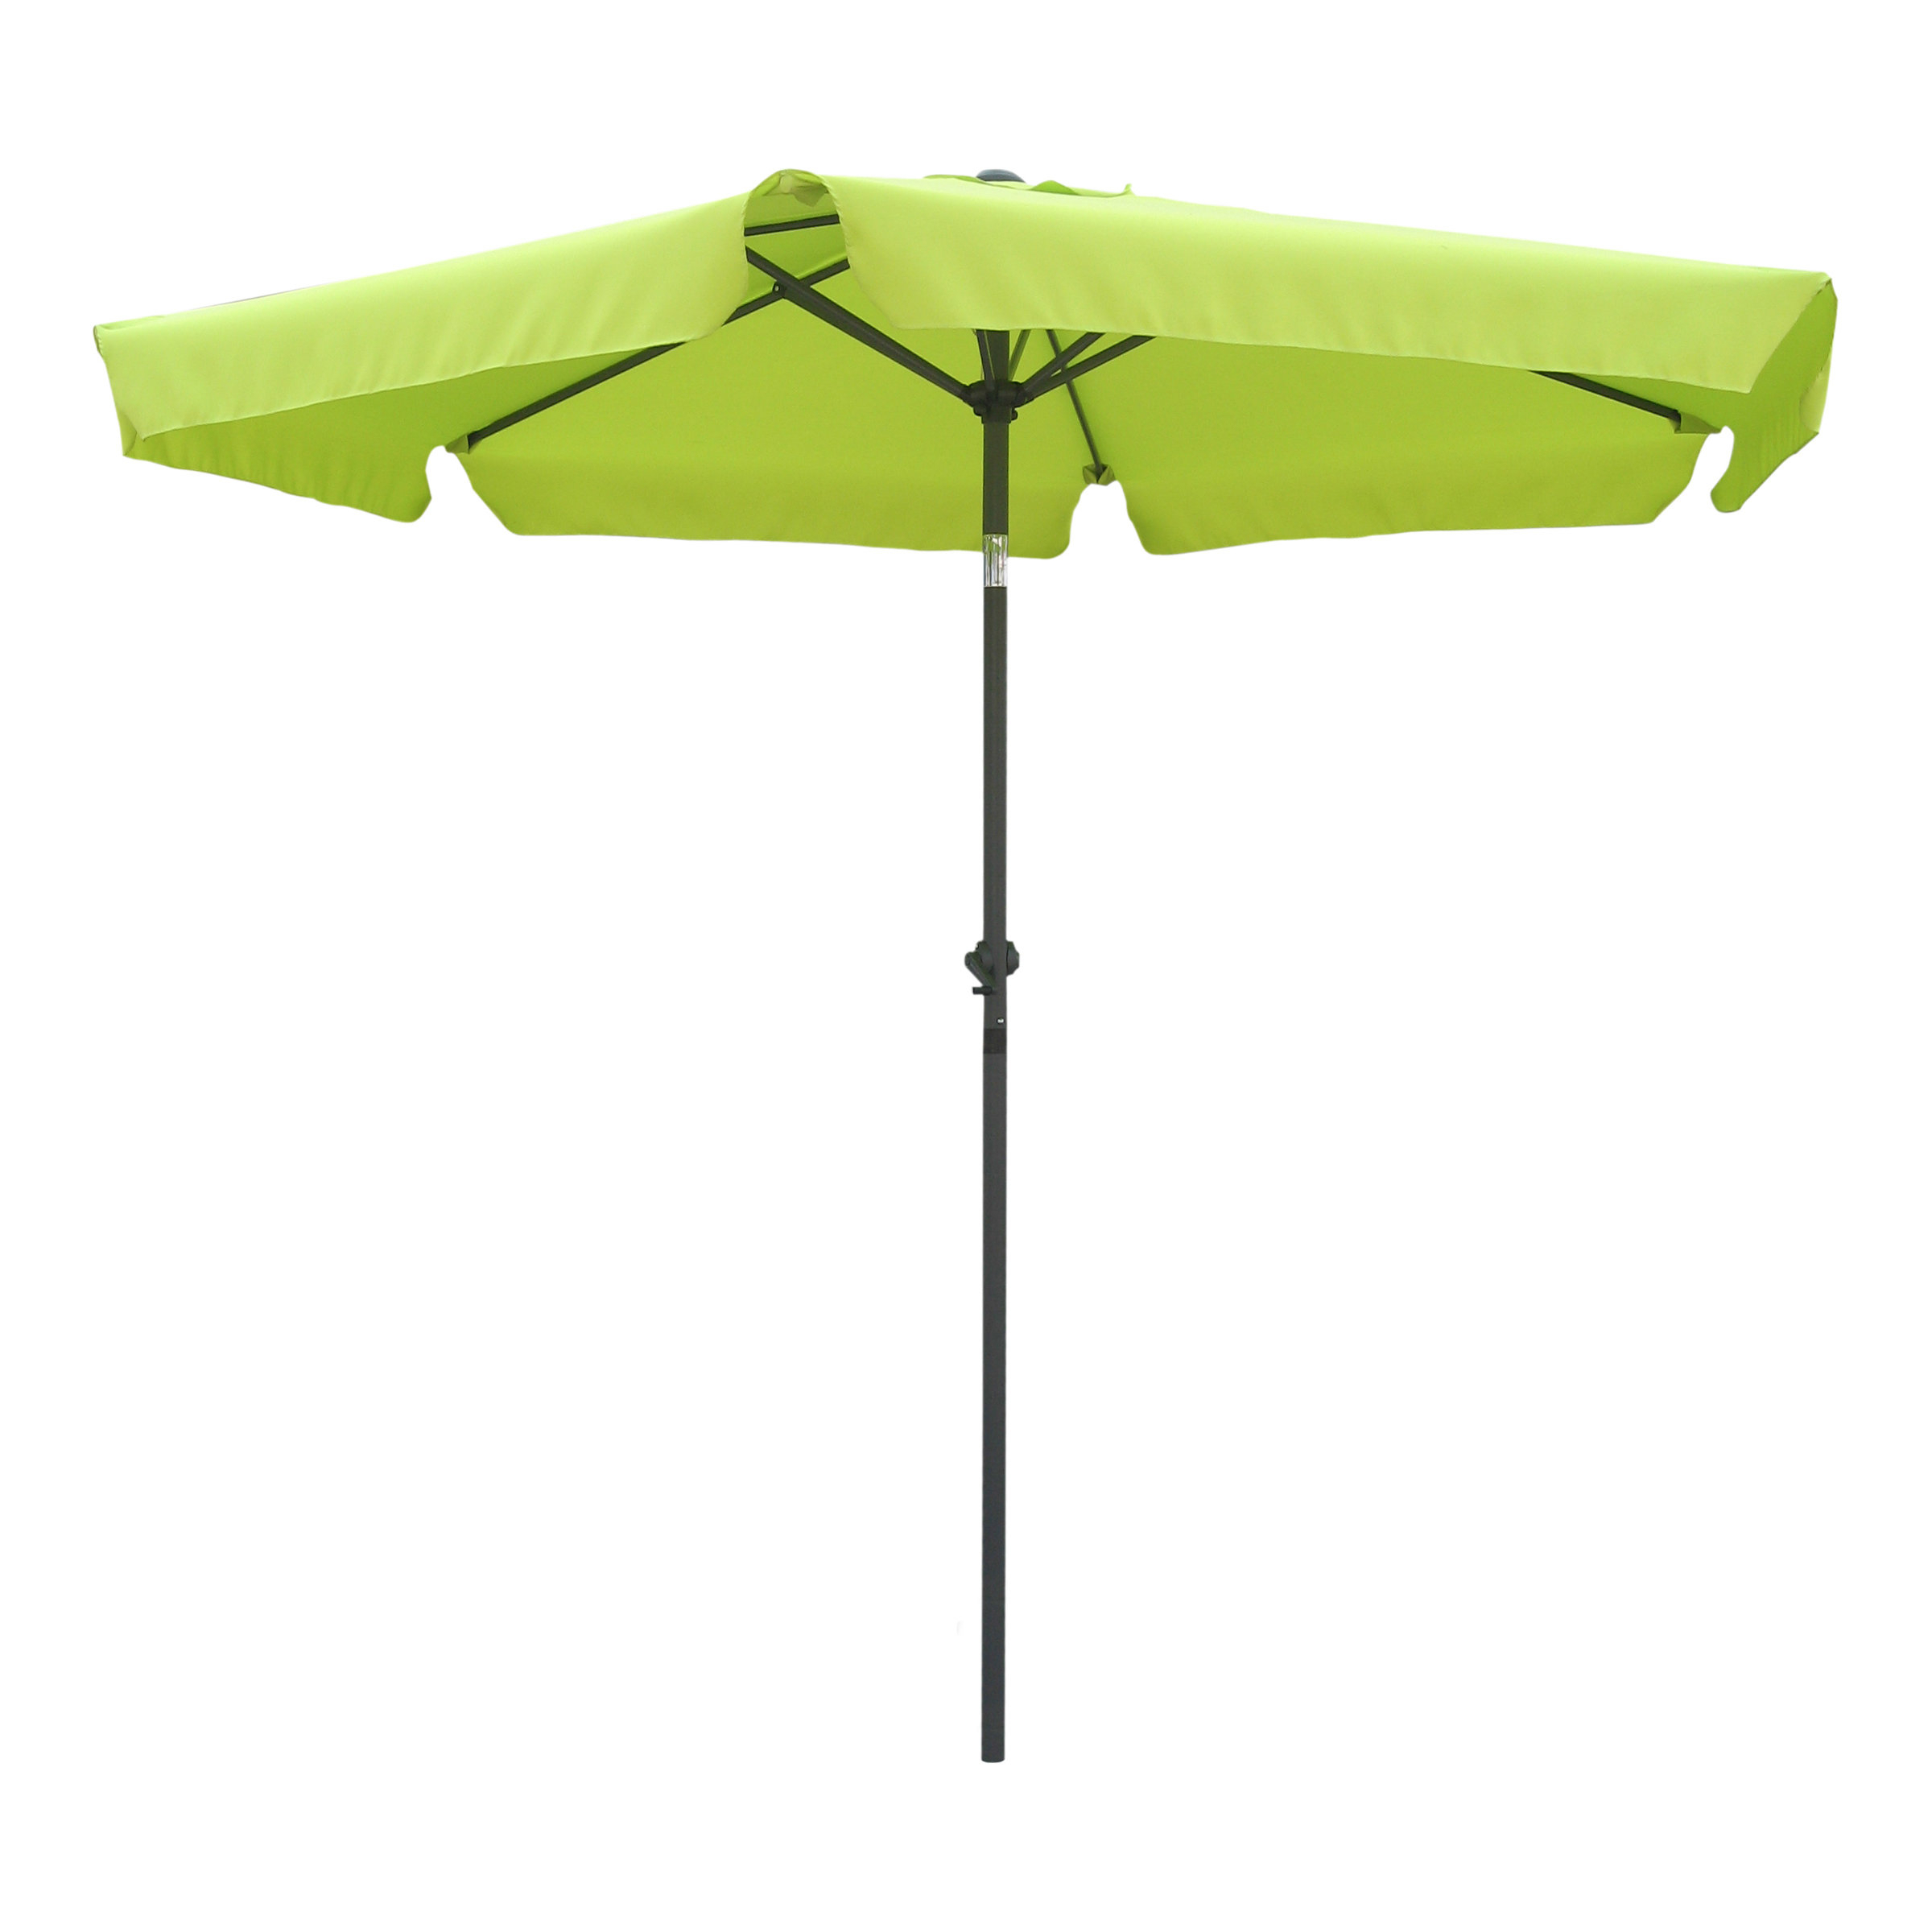 Hyperion 8' Beach Umbrella With Regard To Well Liked Hyperion Market Umbrellas (Gallery 3 of 20)